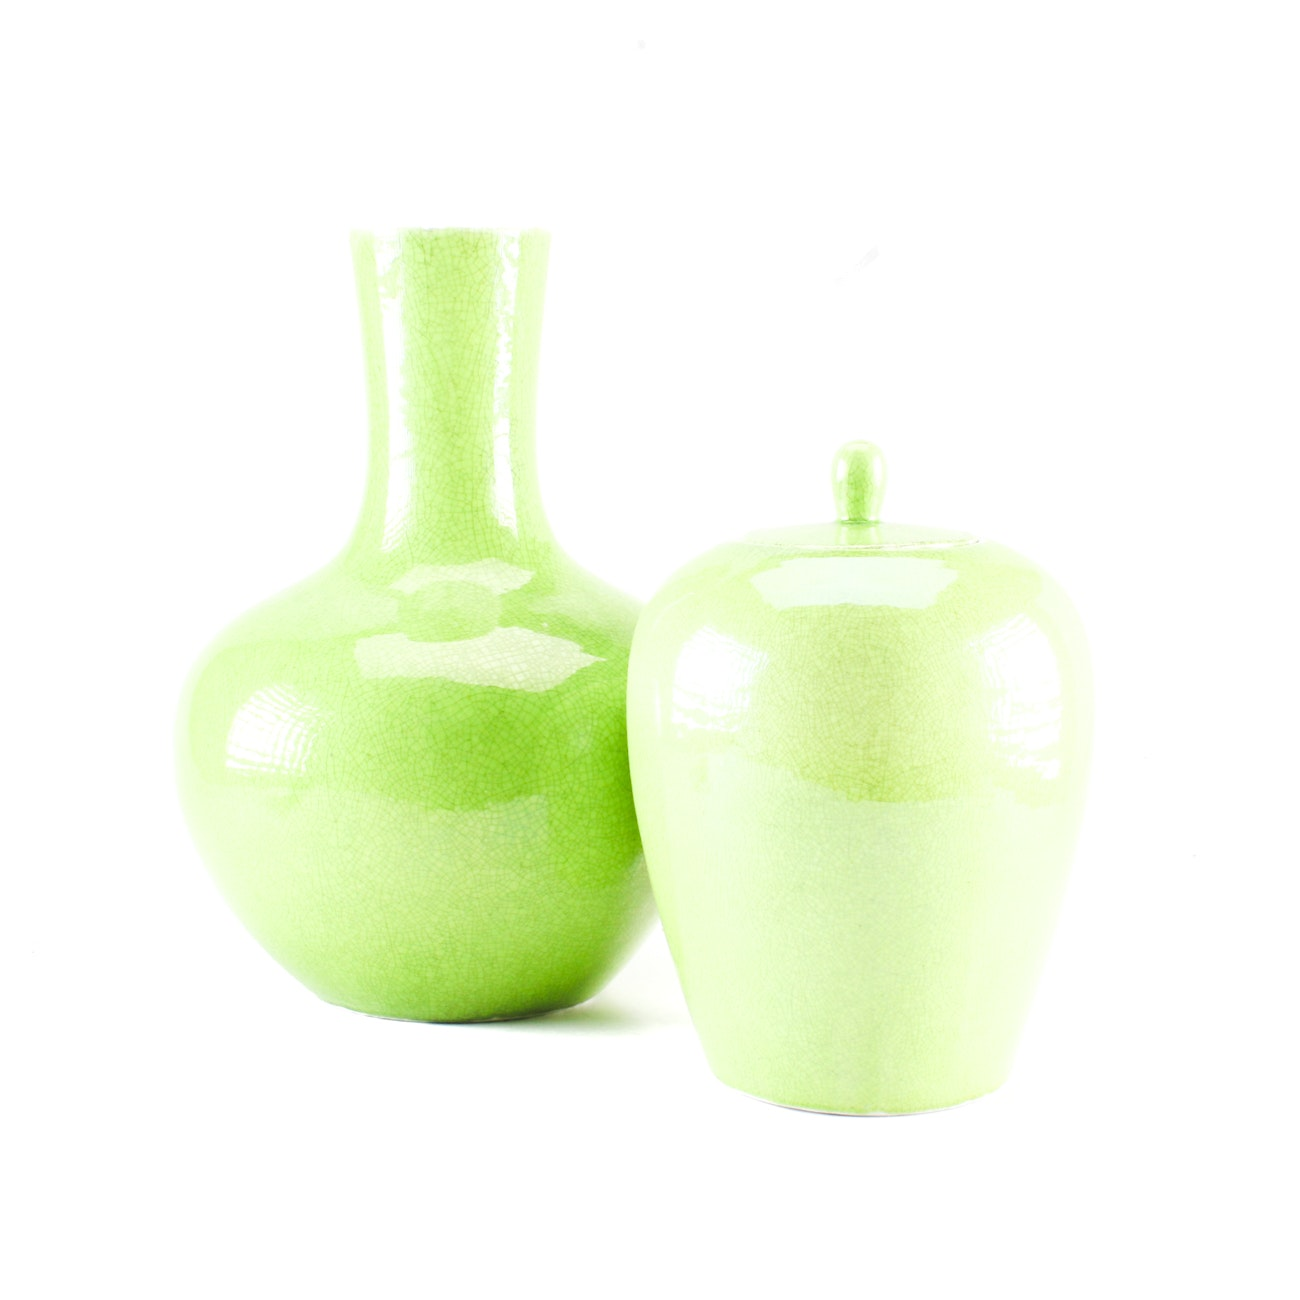 Chinese Ceramic Vase and Ginger Jar with Lid